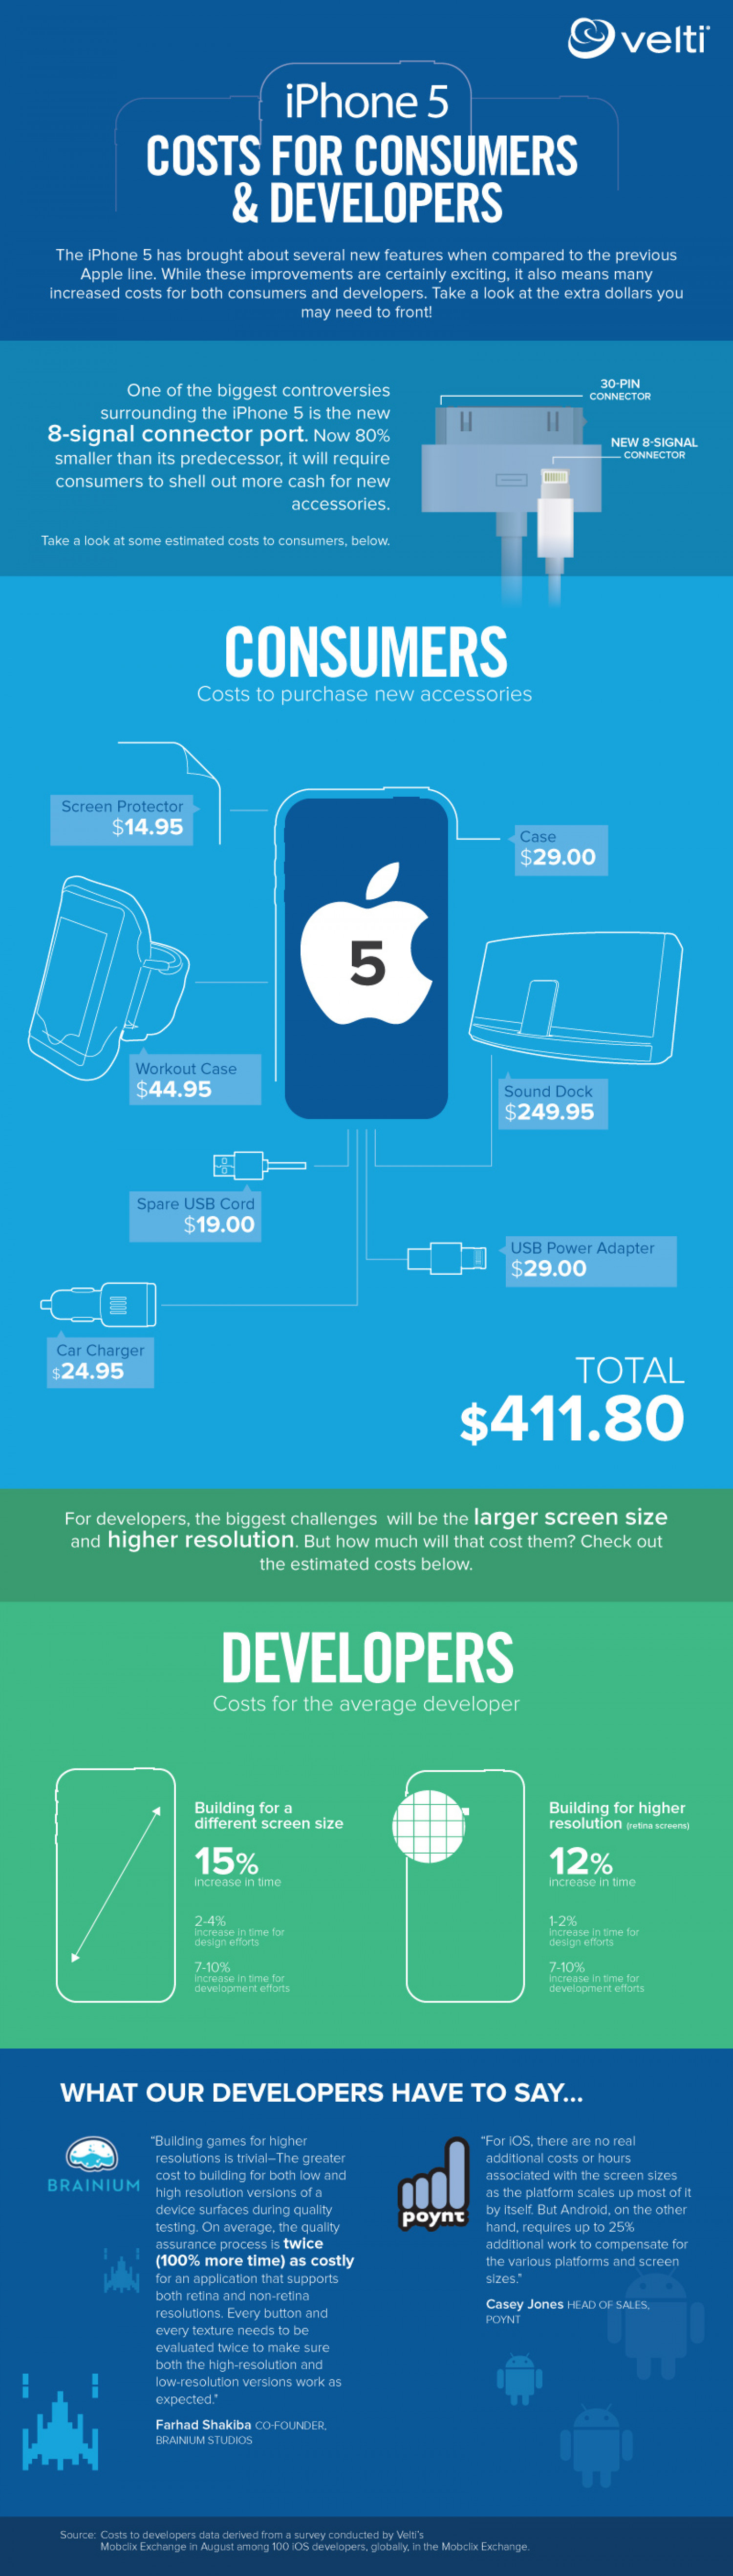 Consumers and Developers Costs for iPhone5 Infographic